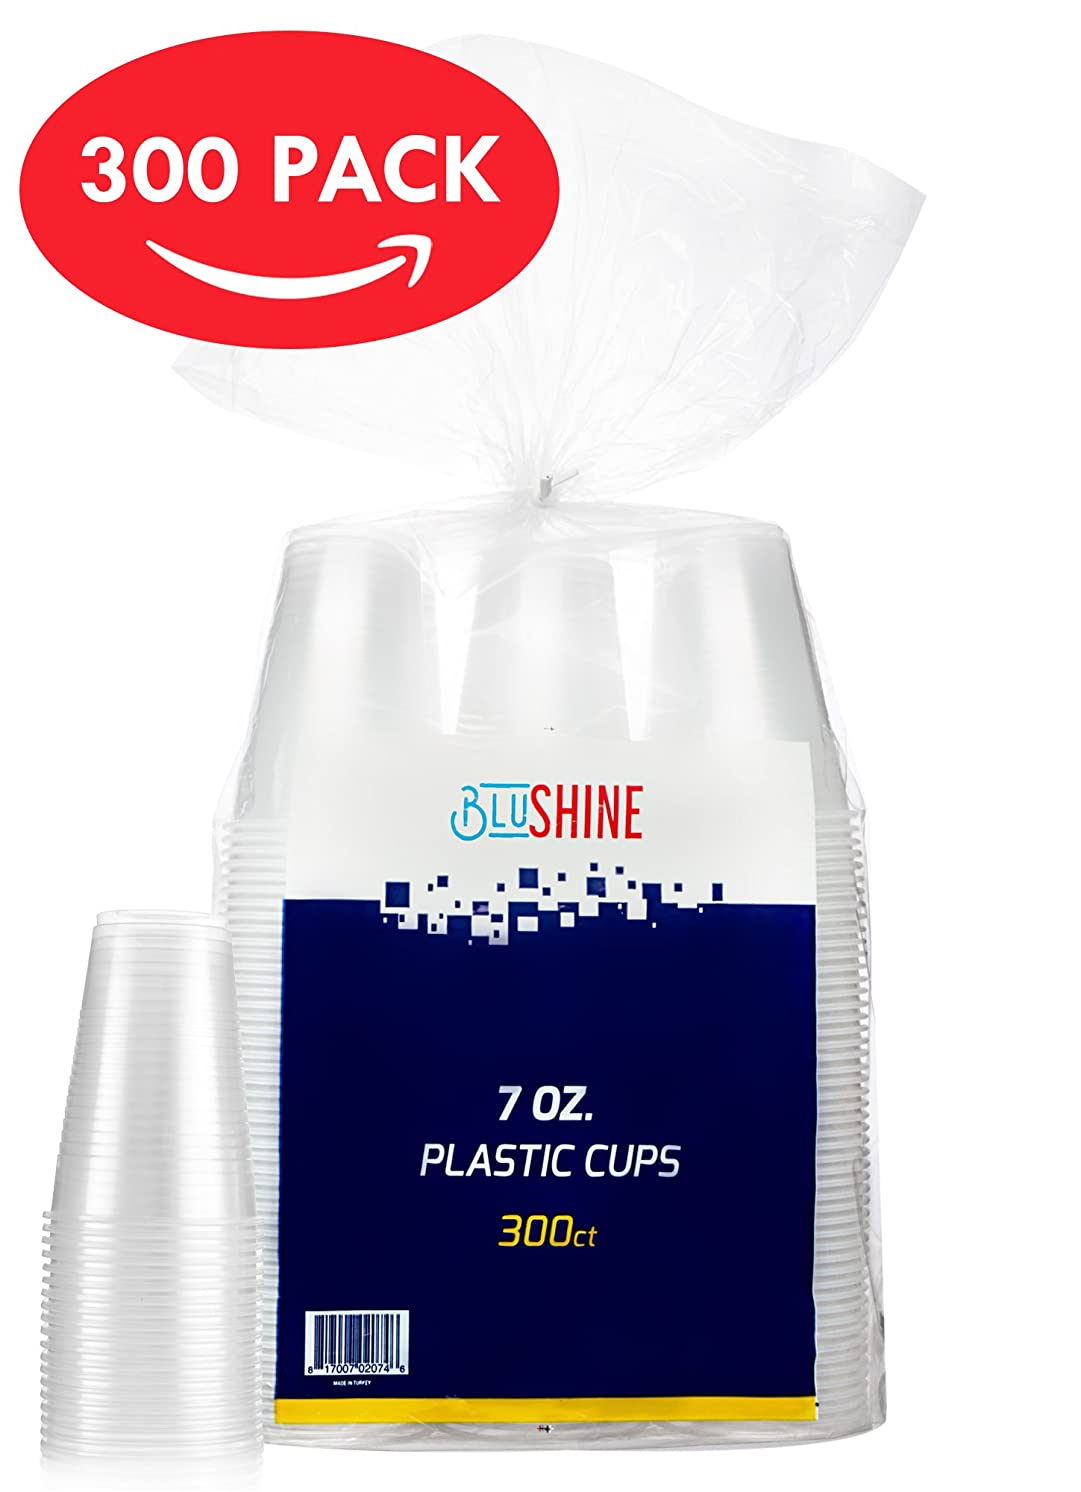 7 Ounce Clear Plastic Disposable Cups by BluShine (300 Count) – BPA-Free, Durable, Stackable & Crack Resistant Drinkware - Non-Stick, Easy to Pull Apart – Ideal for Home, Office, or Business